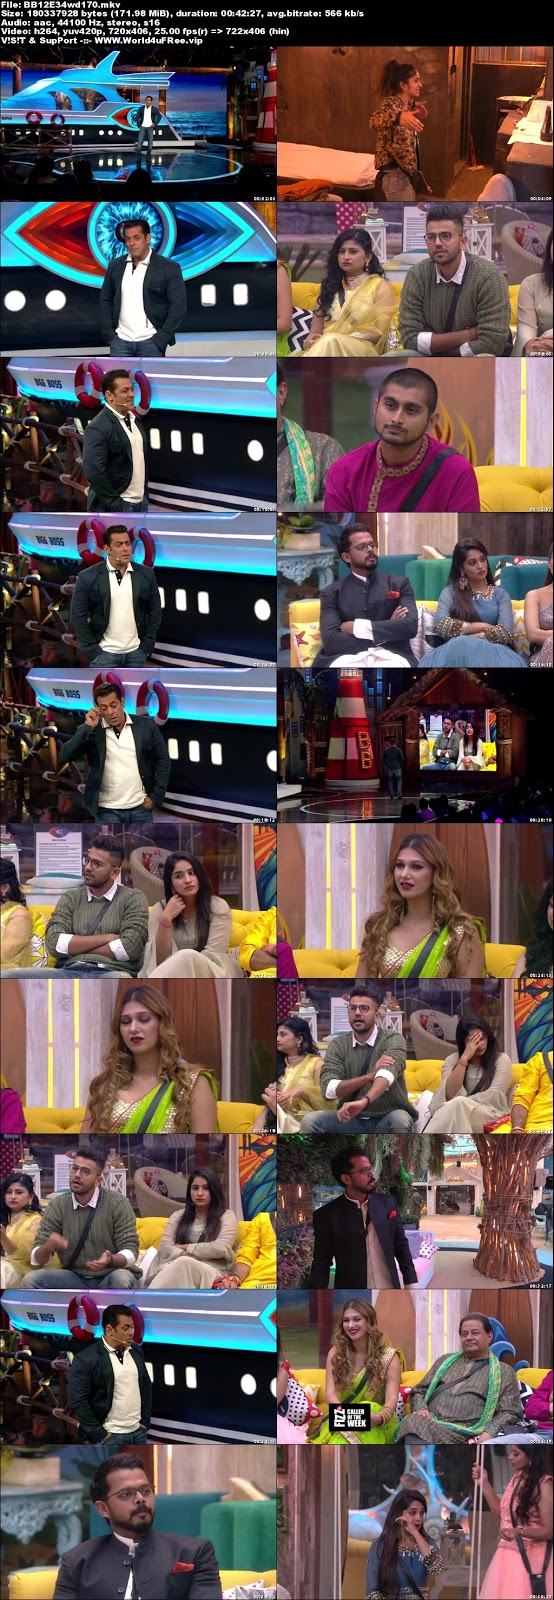 Bigg Boss 12 Episode 34 20 October 2018 WEBRip 480p 170mb x264 world4ufree.fun tv show Episode 34 20 October 2018 world4ufree.fun 200mb 250mb 300mb compressed small size free download or watch online at world4ufree.fun